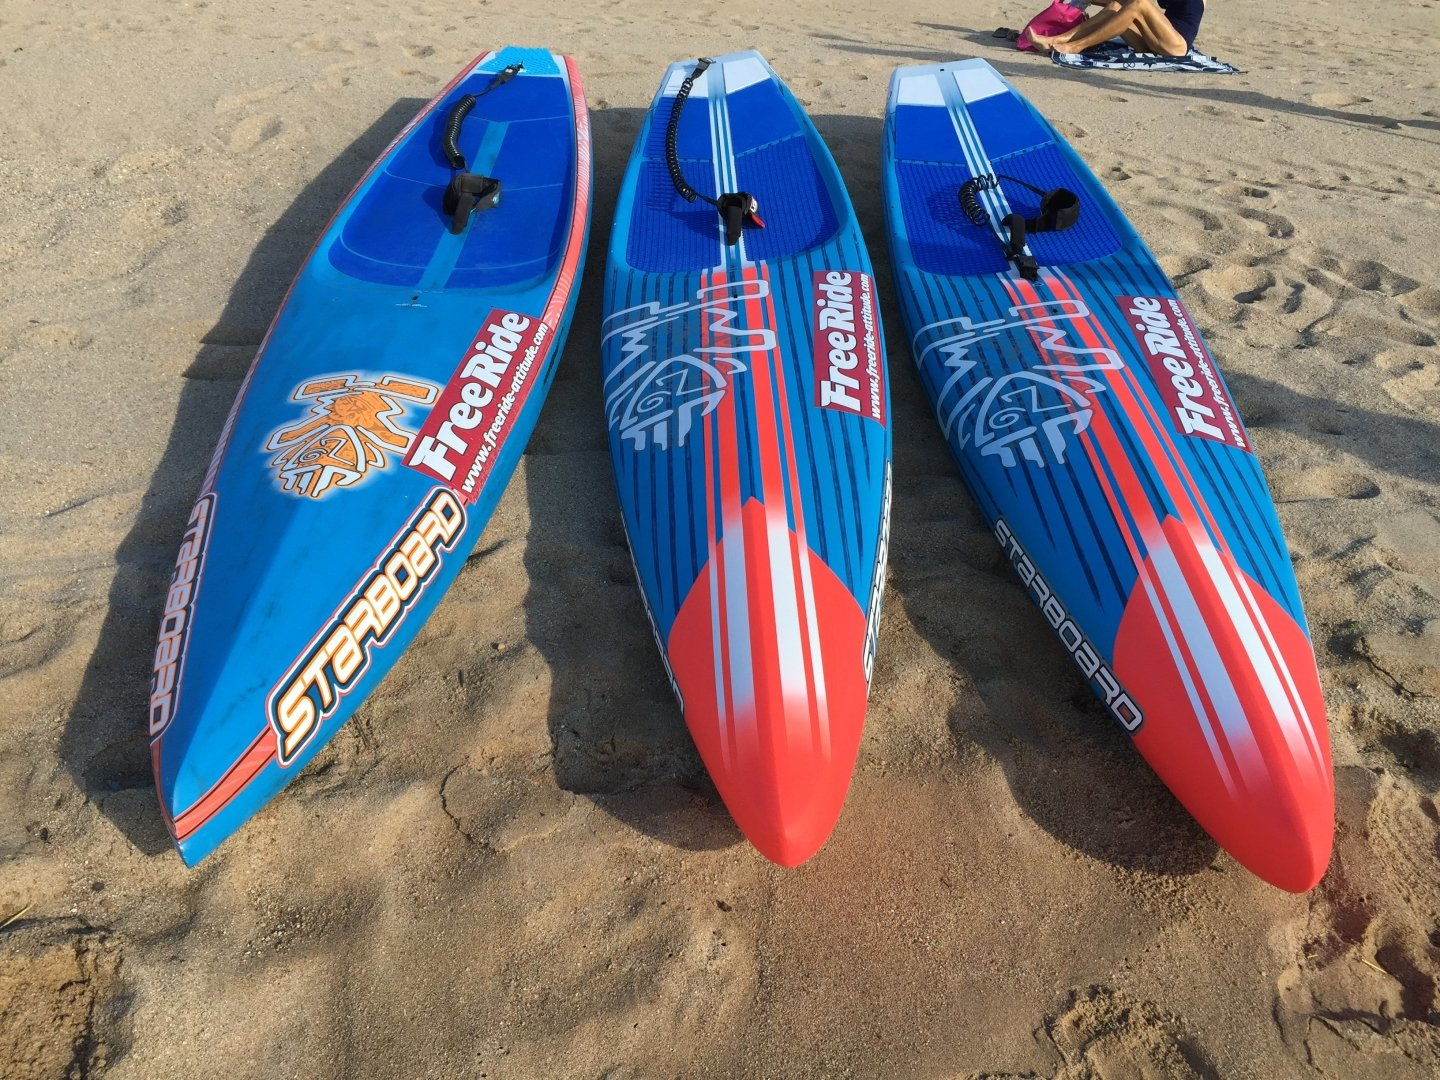 Test comparatif Starboard All Star 2016 vs 2015 12'6 stand up paddle race: